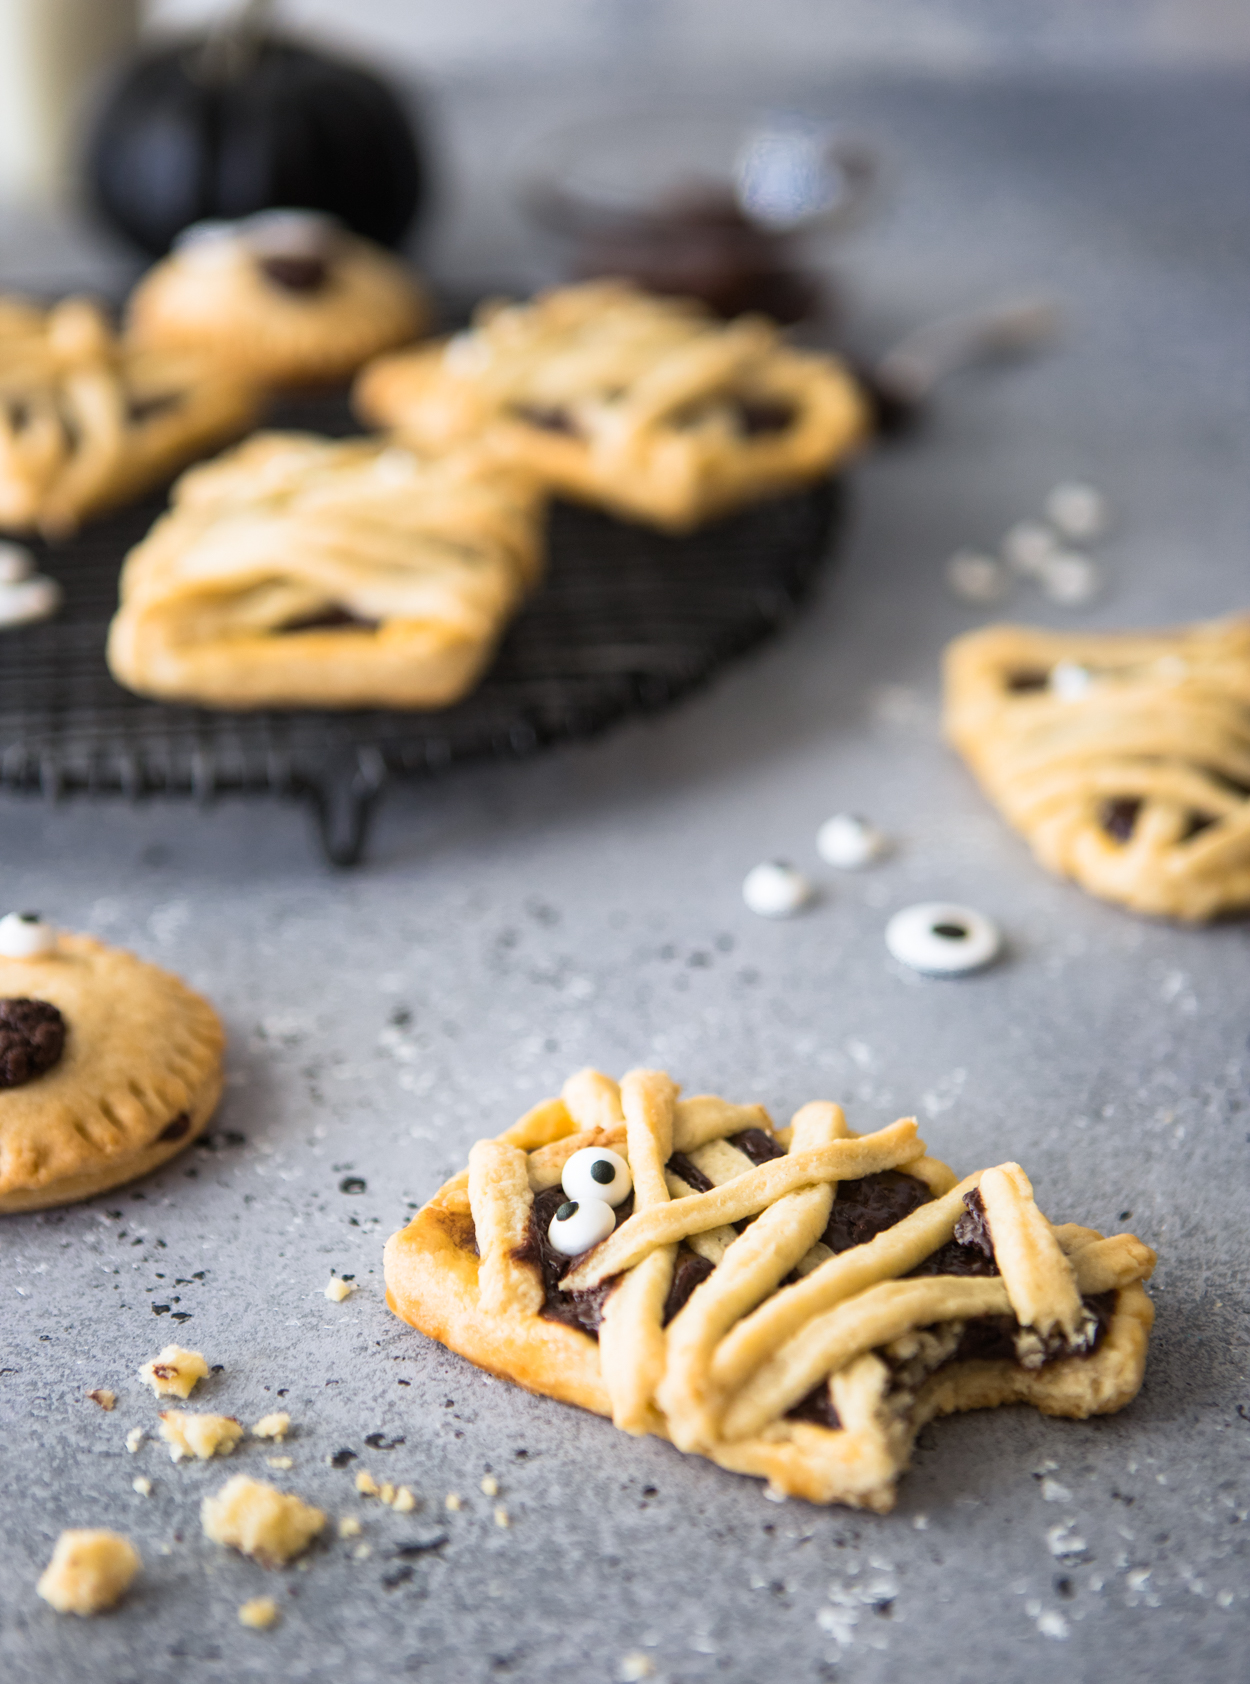 Mummy decorated chocolate hand pies against a gray backdrop